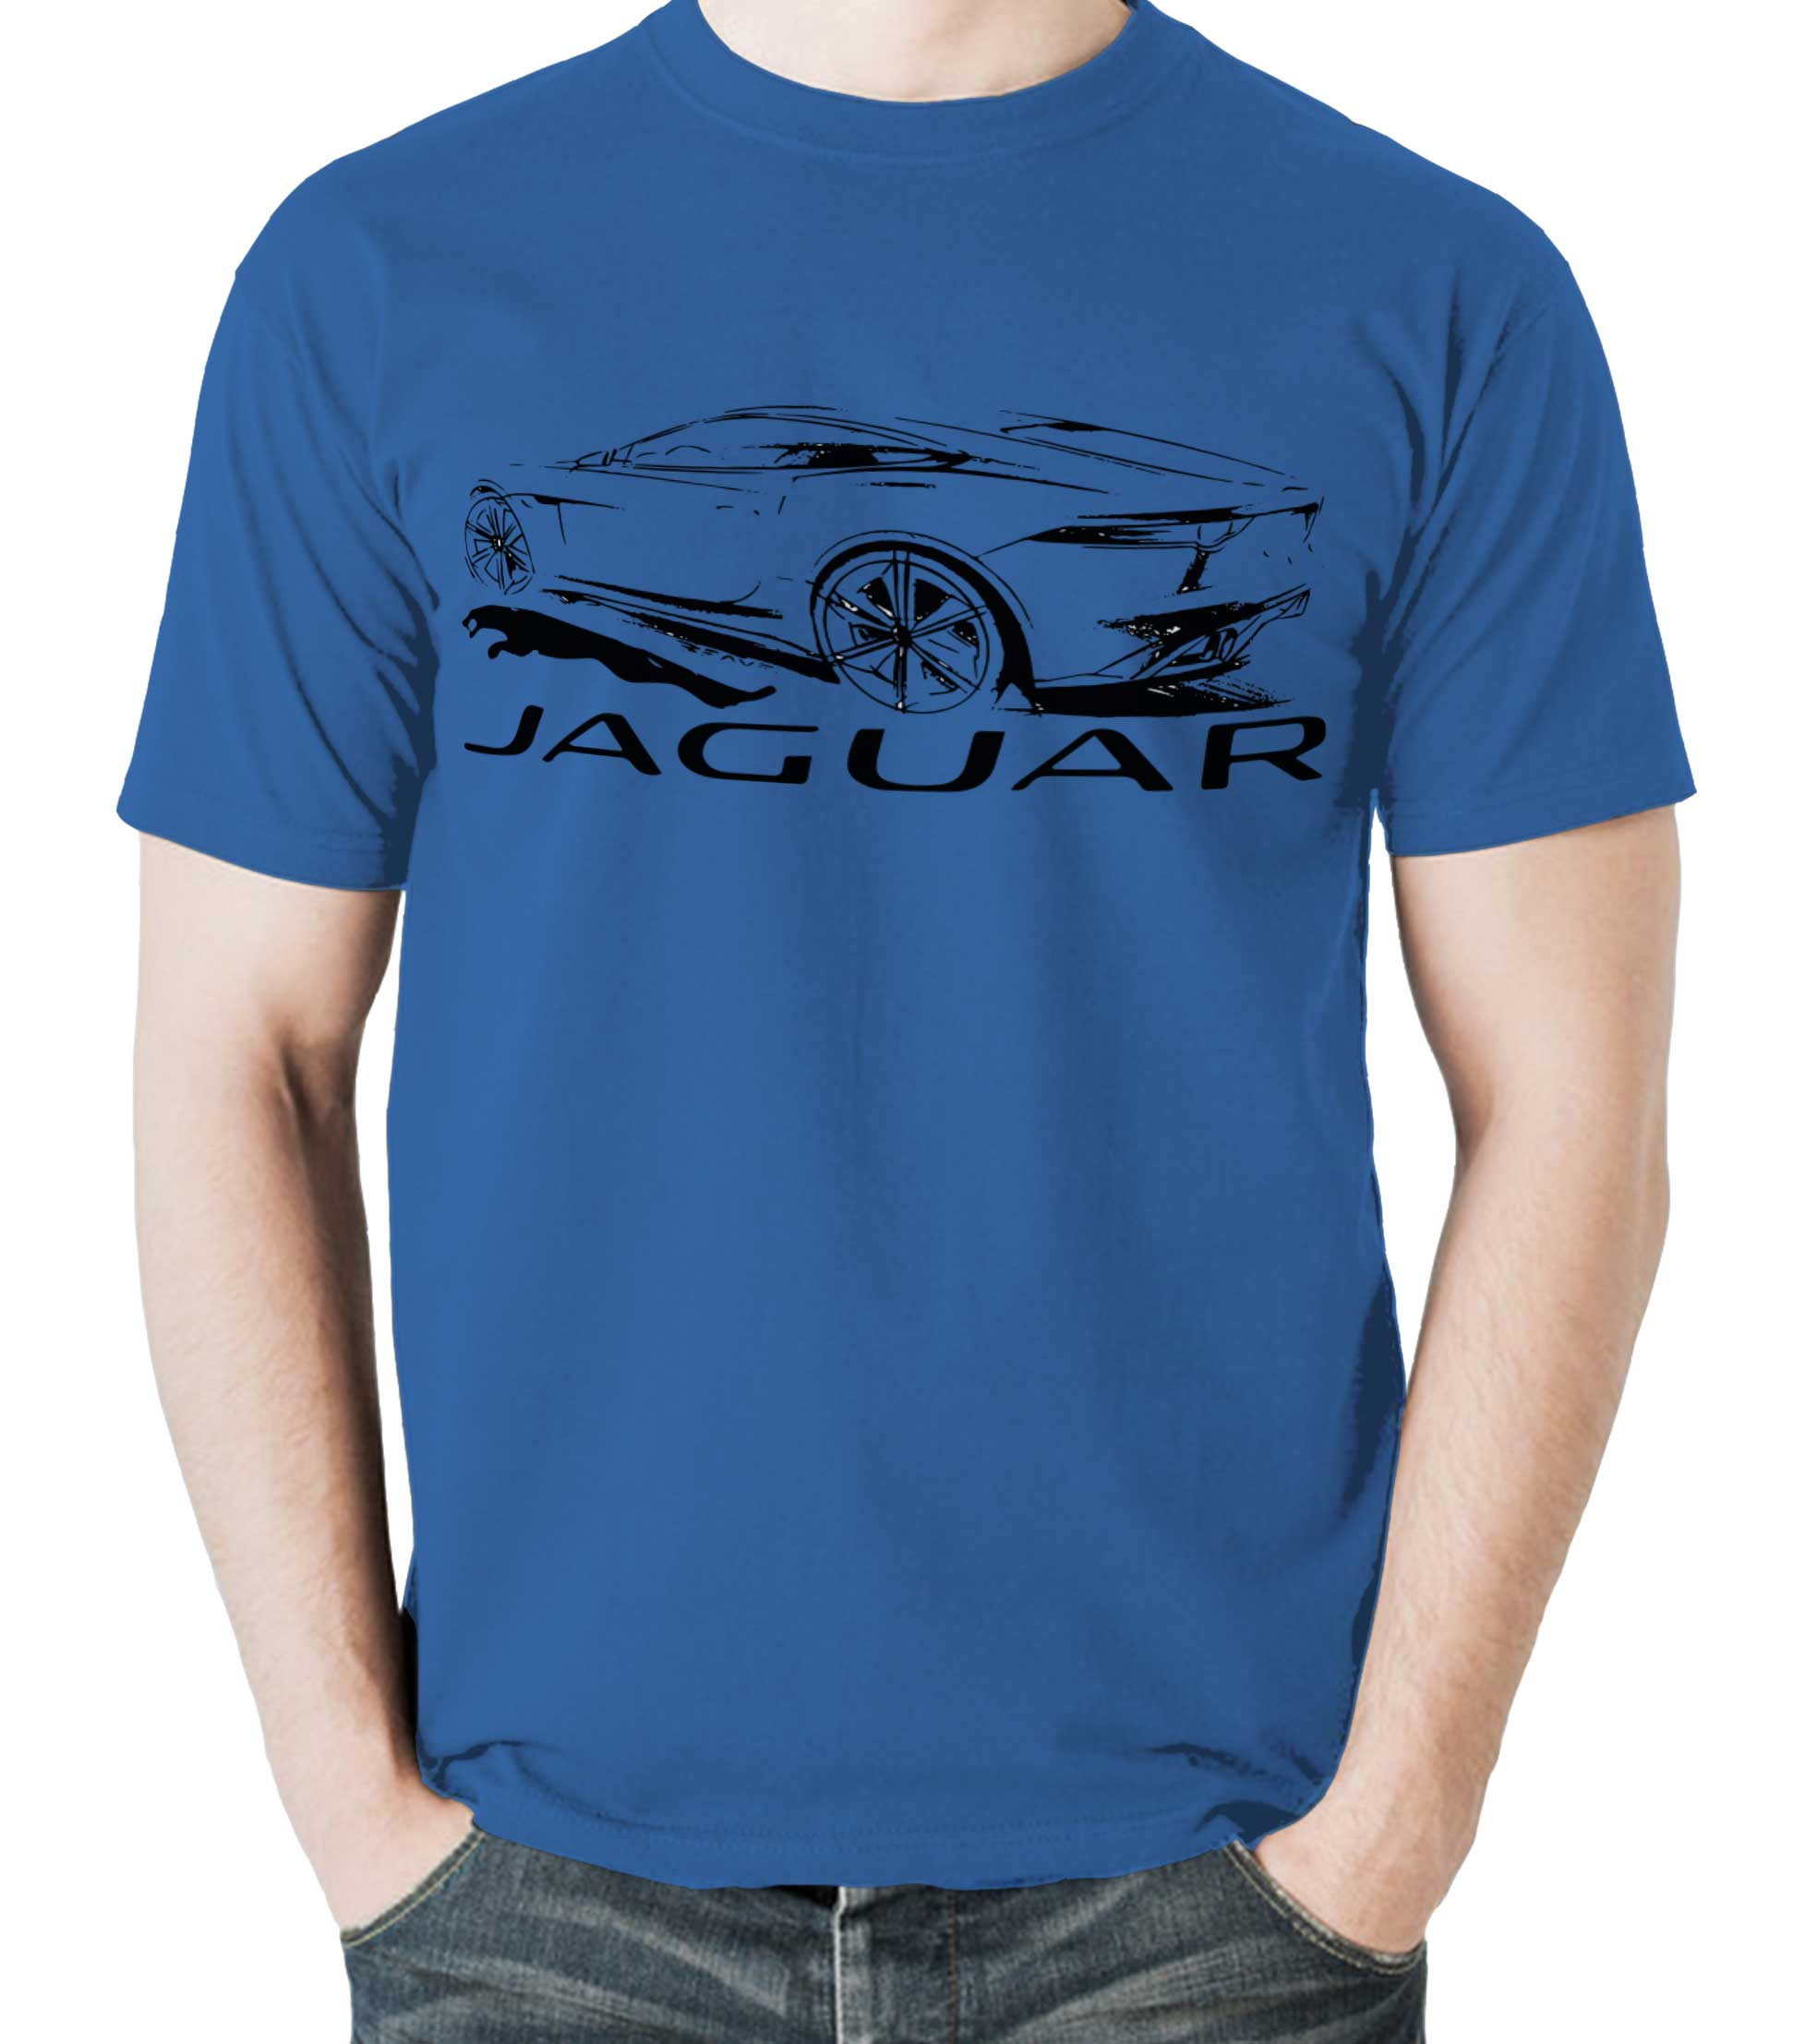 word shirts bear mens over shirt t pop los free on orders angeles jaguar shoes s overstock yosemite clothing art men product shipping